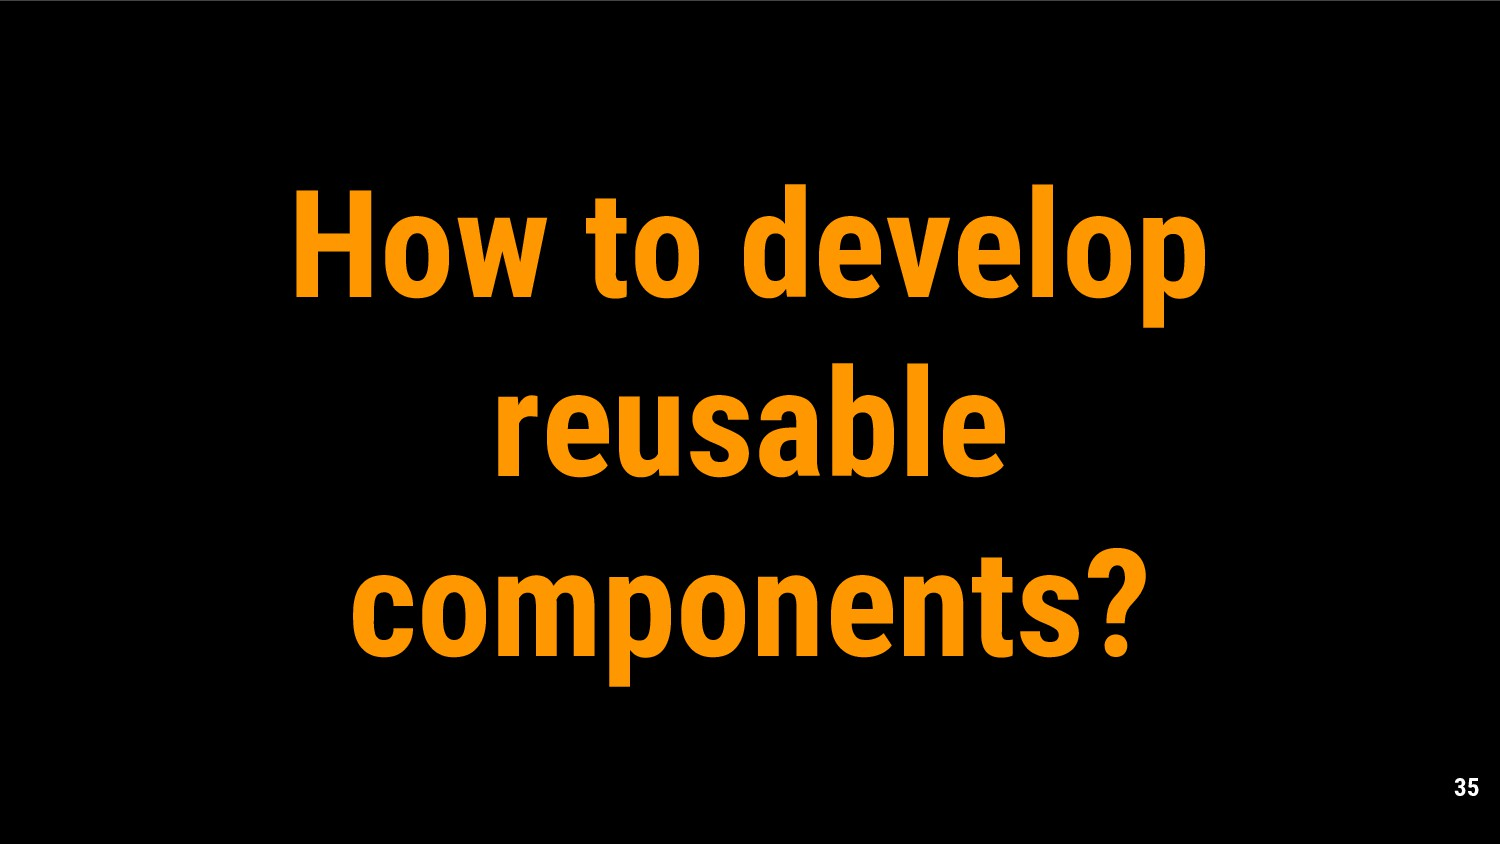 35 How to develop reusable components?